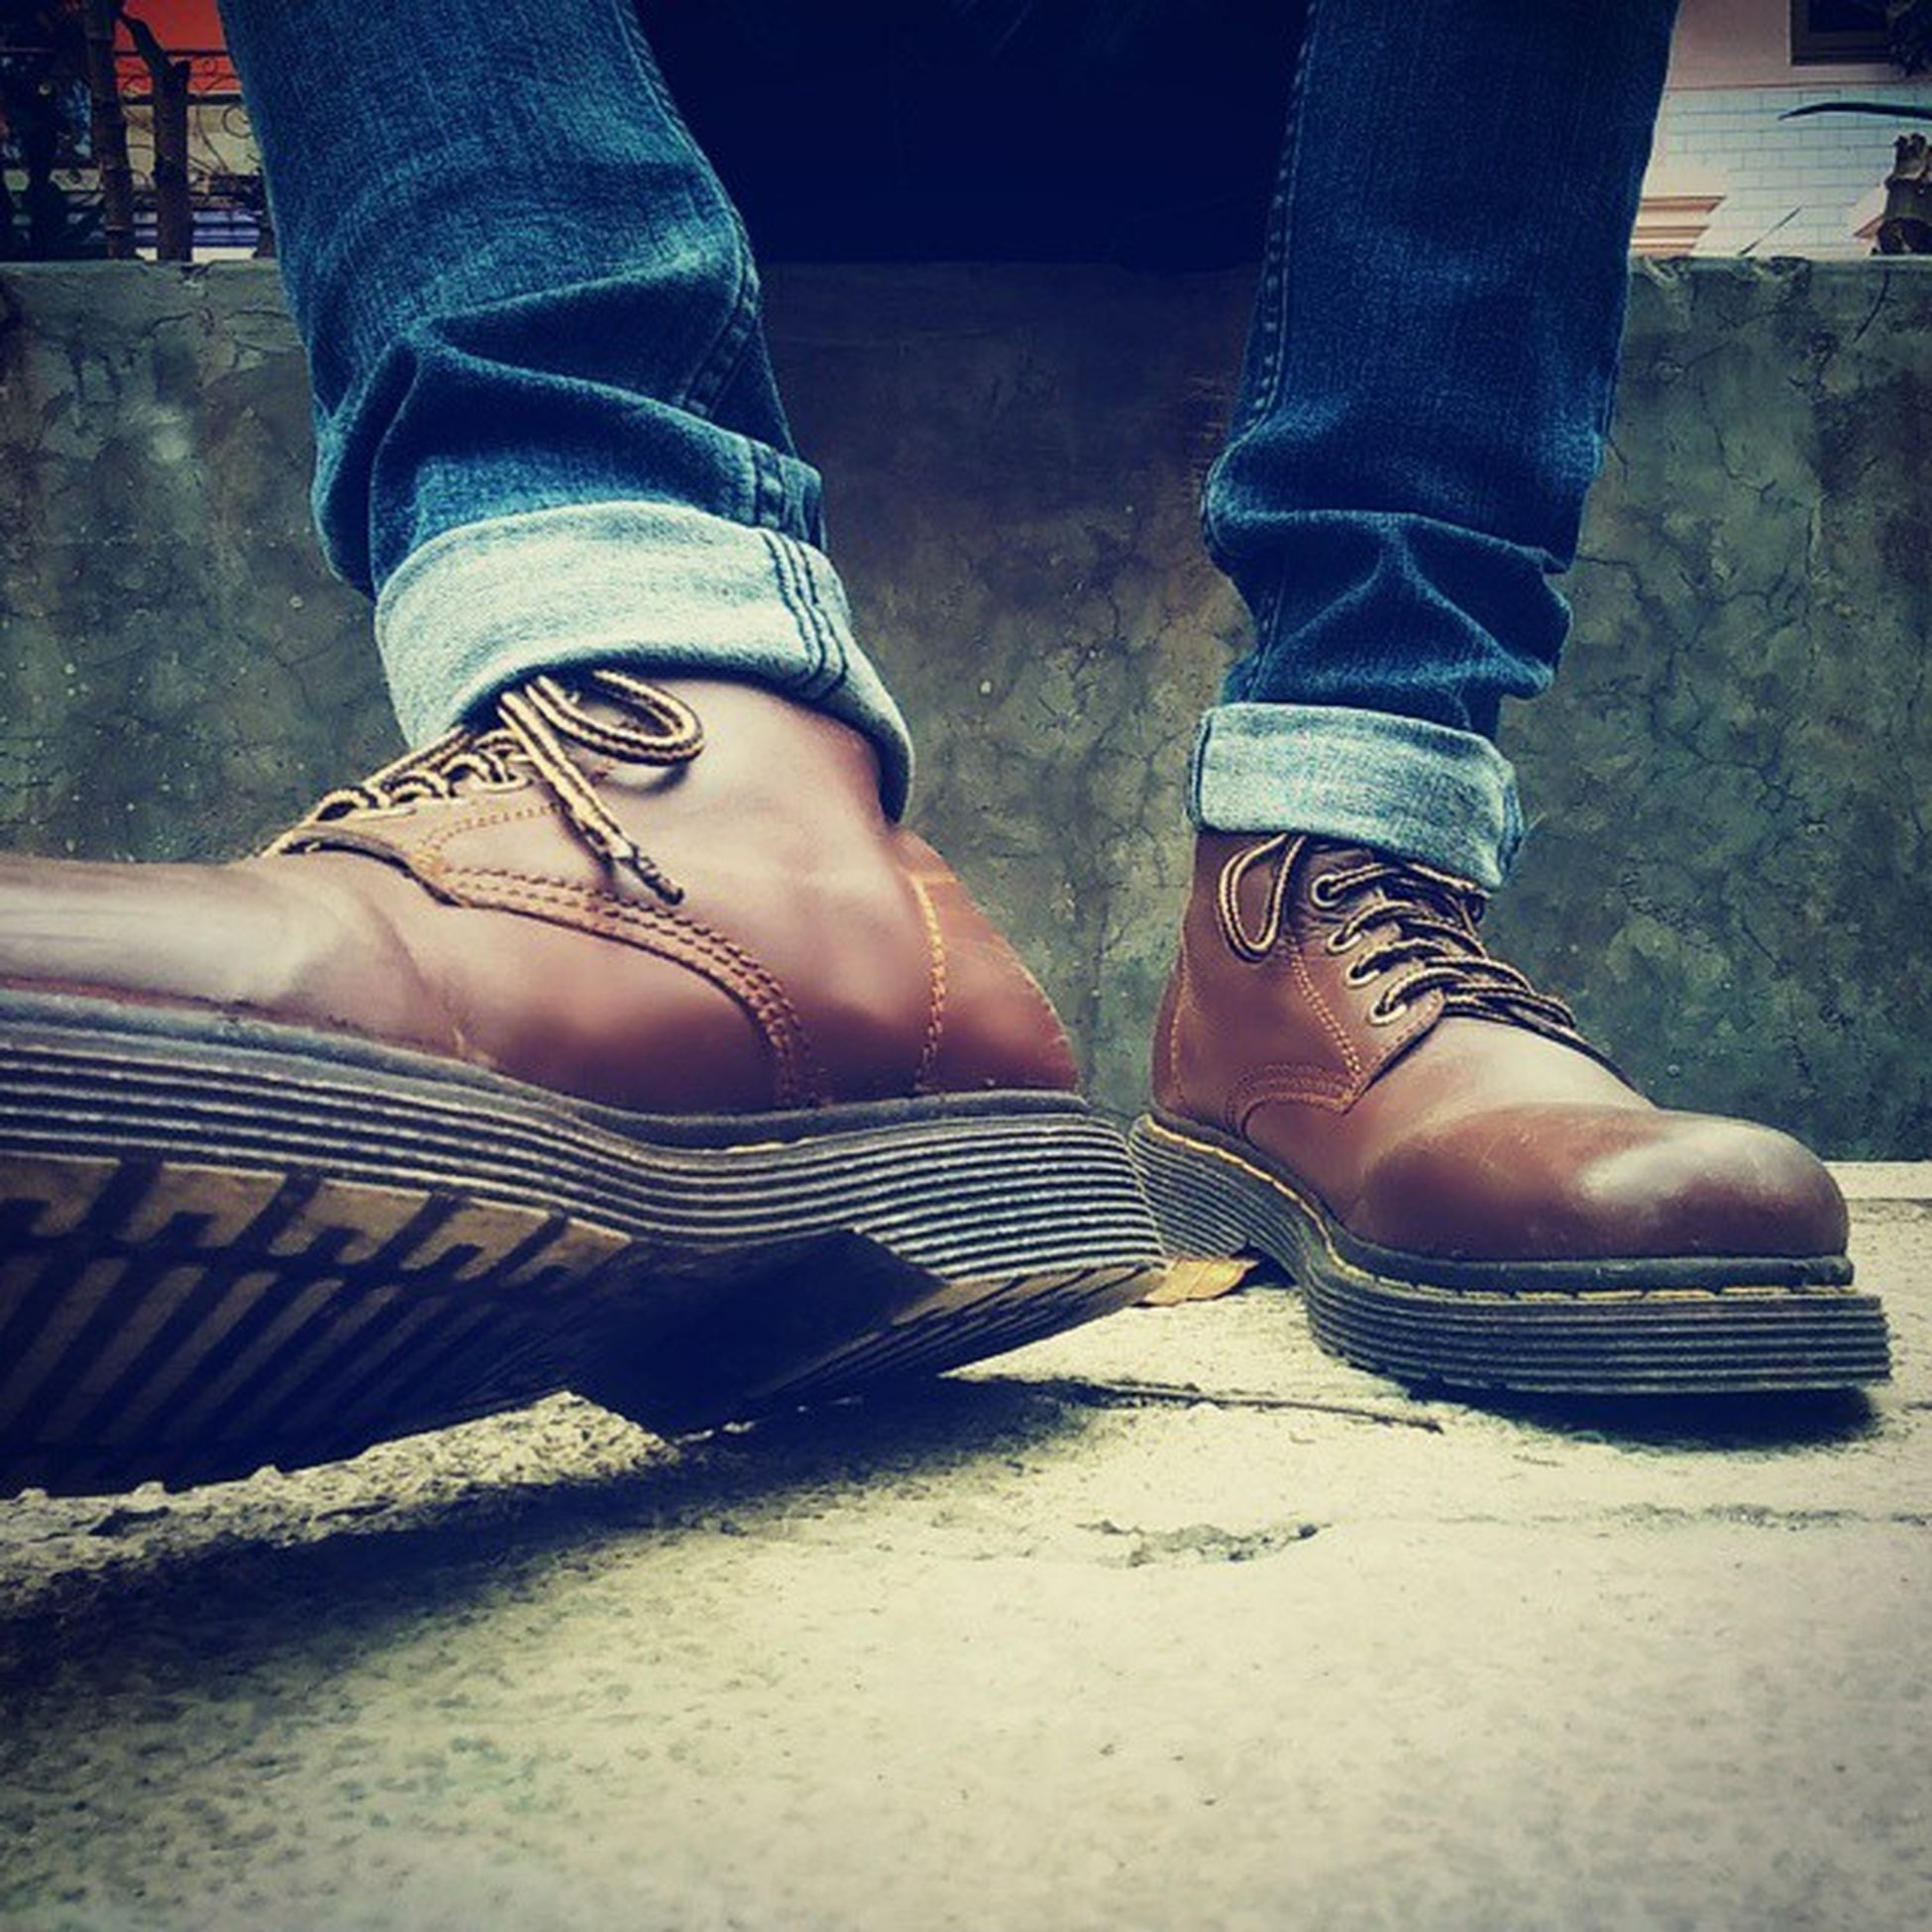 Mystyle Drmartenstyle Loveit Drmartensshoes